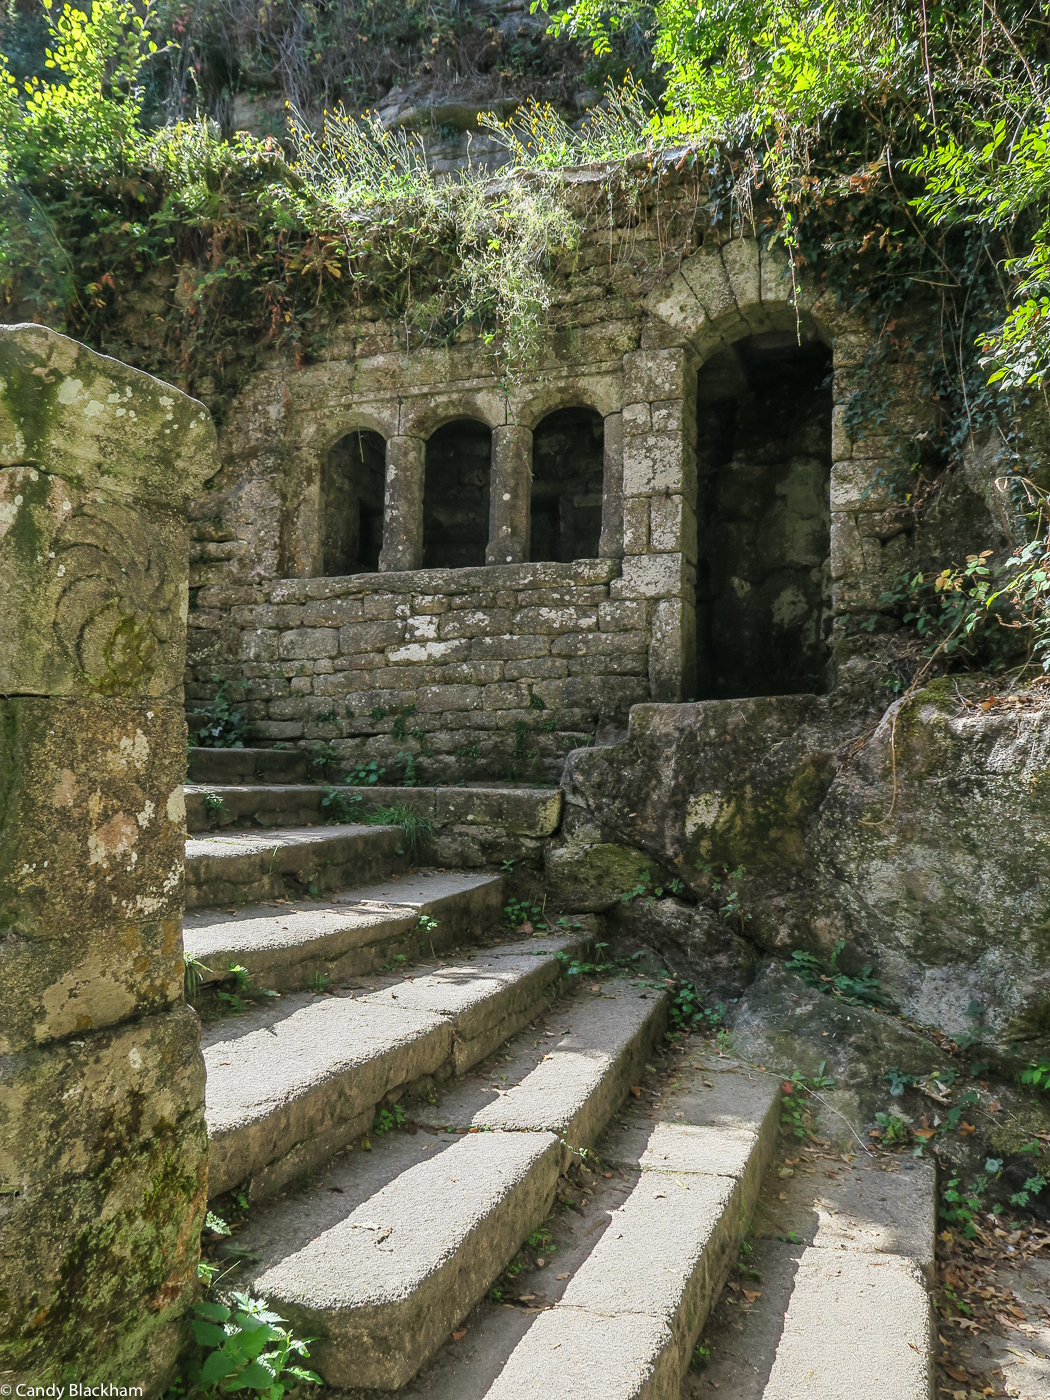 The stairs down to the Chapel